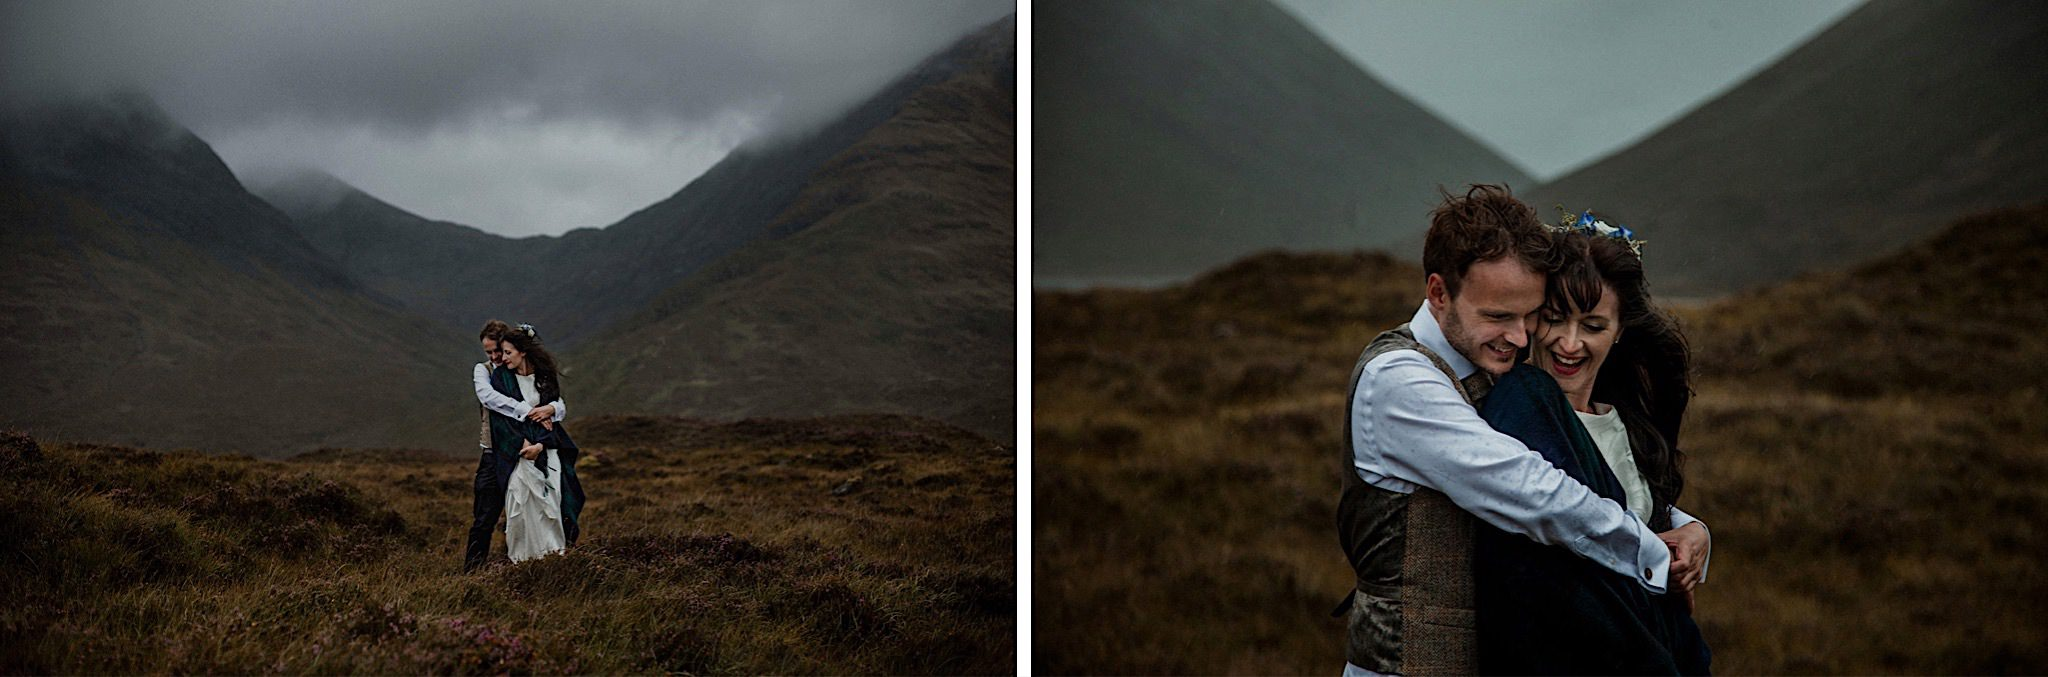 Isle of Skye elopement couple embrace in front of a misty mountainous backdrop